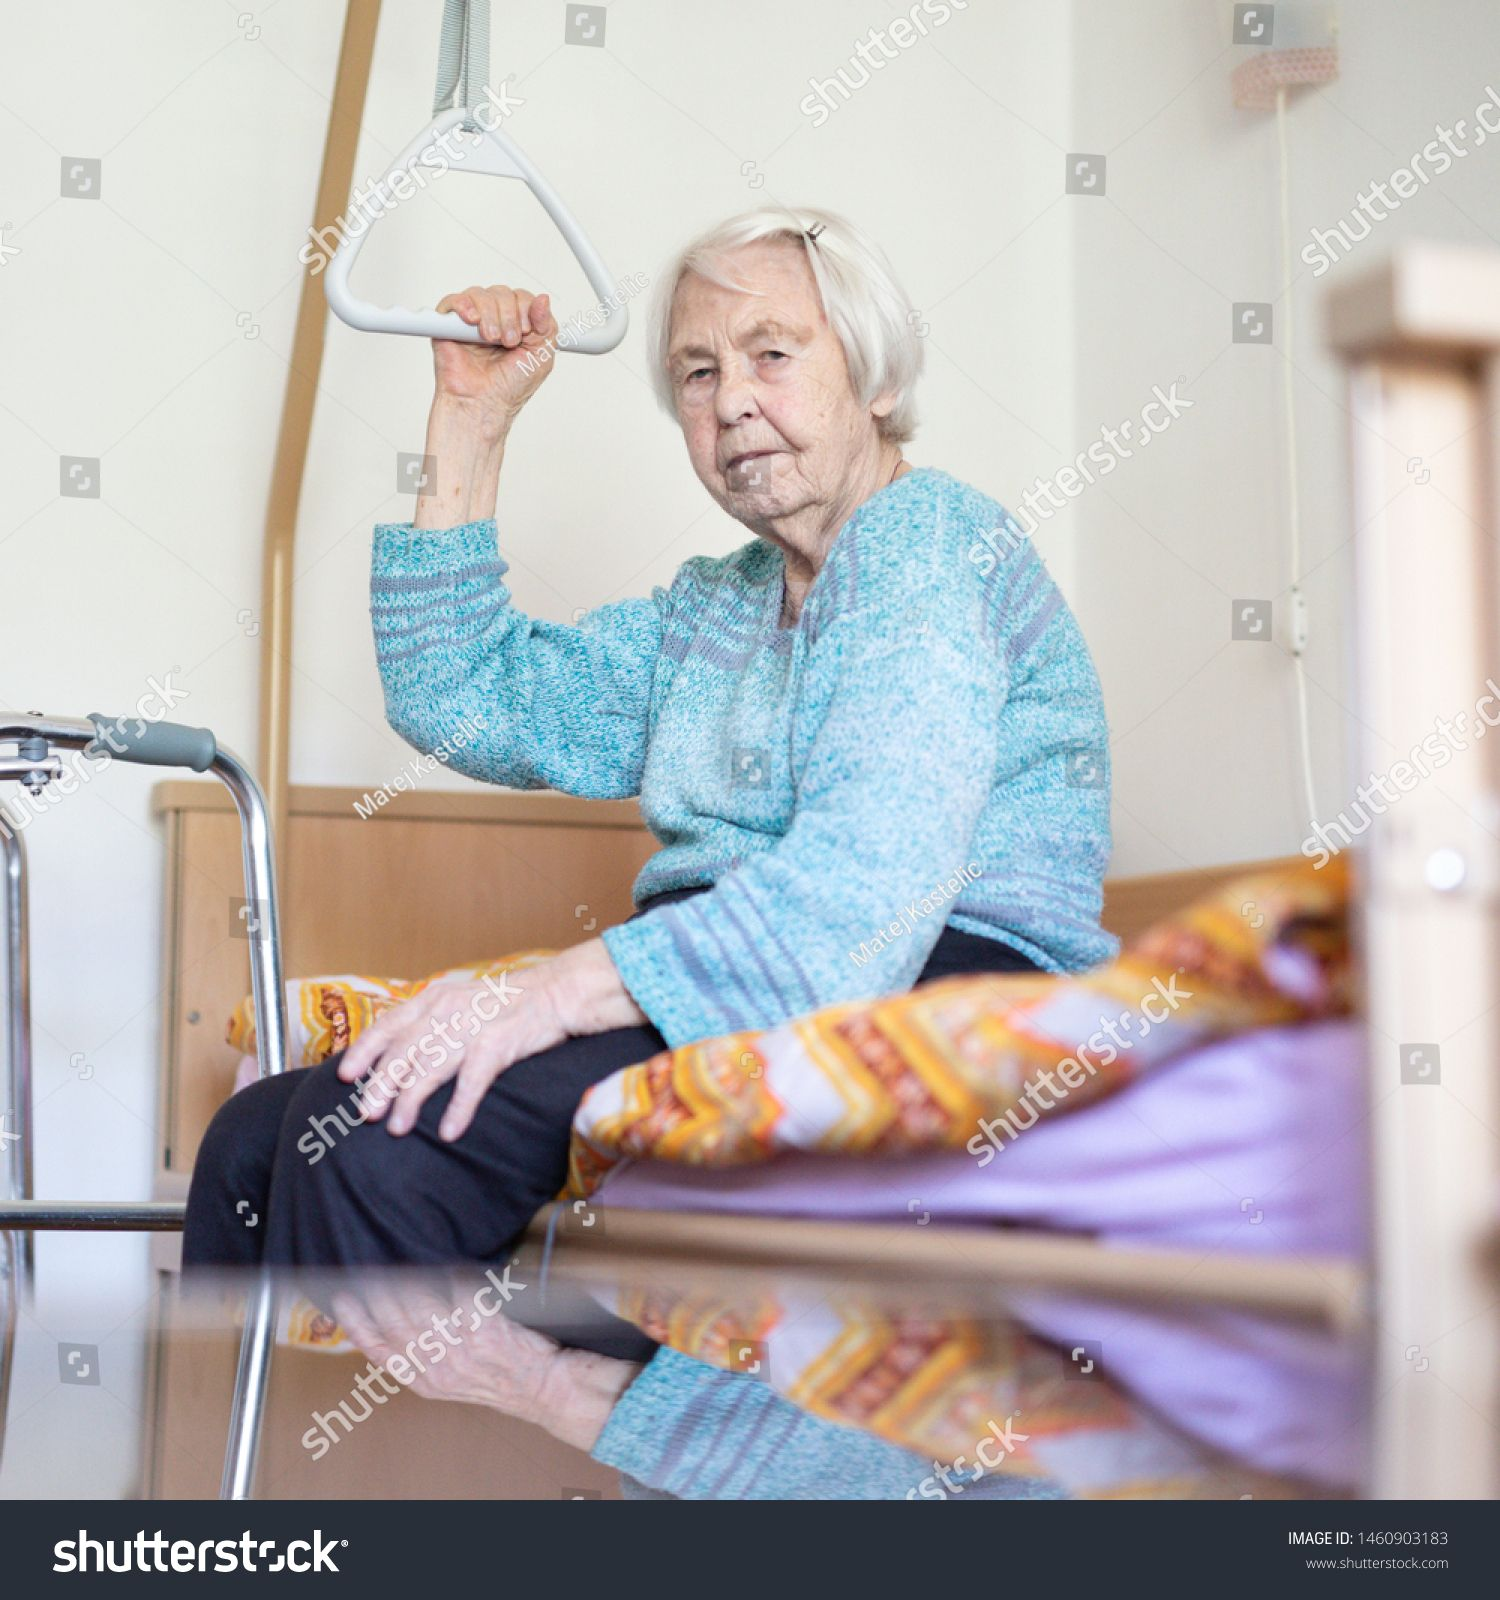 Elderly 96 years old woman sitting on medical bed in